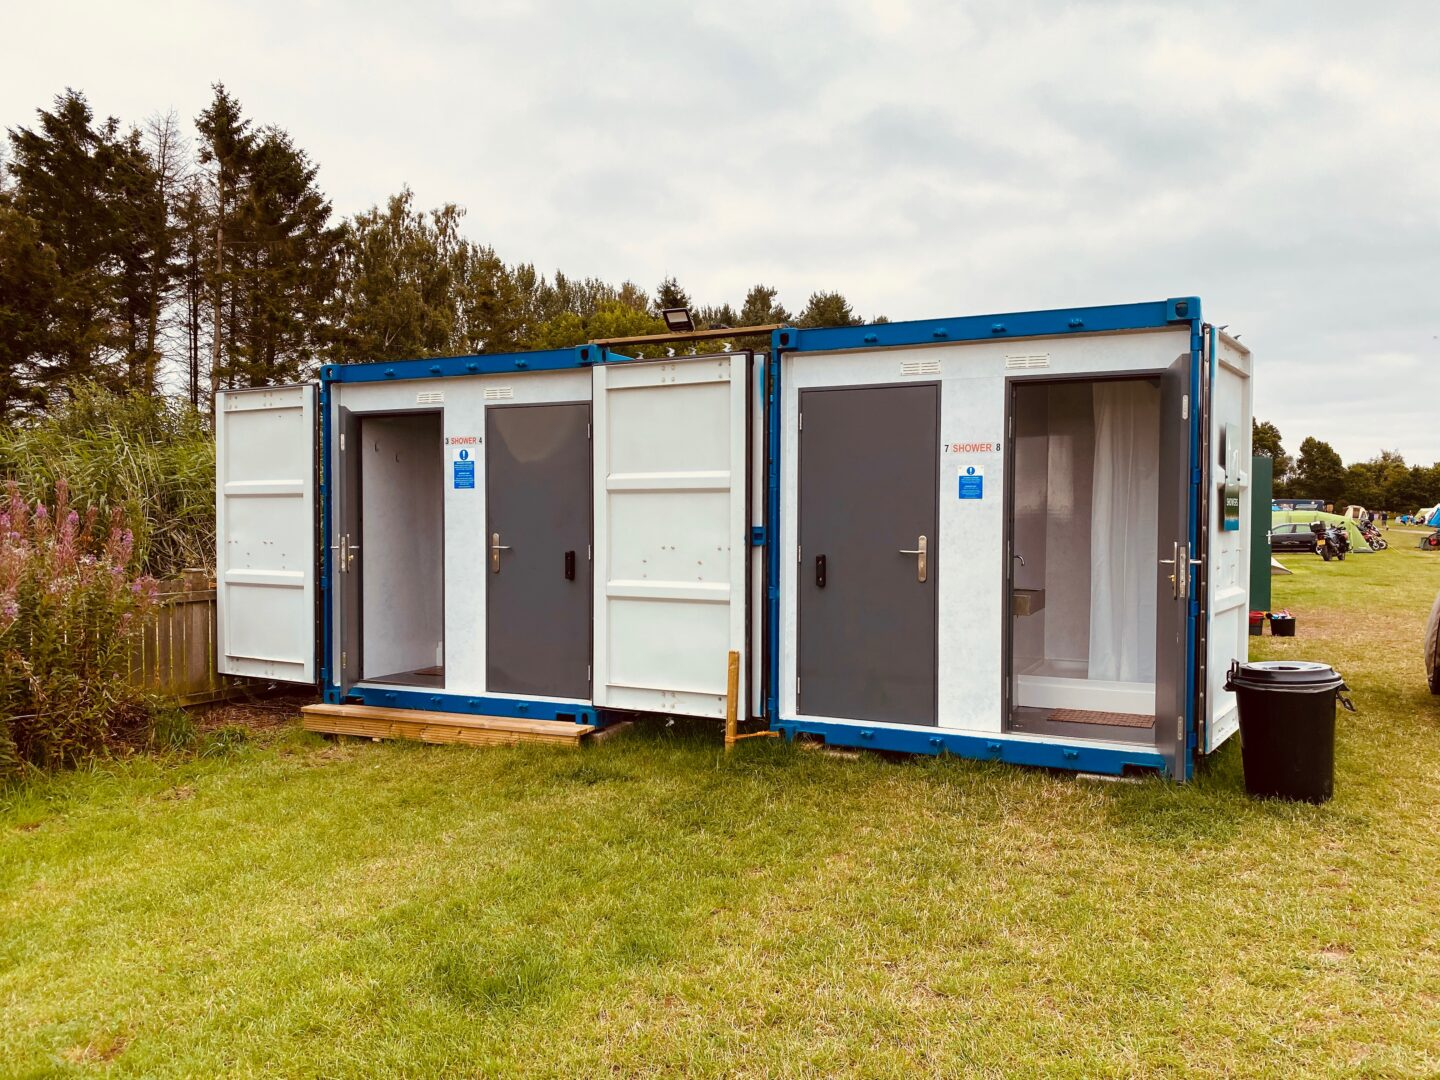 A shower block made from a converted shipping container